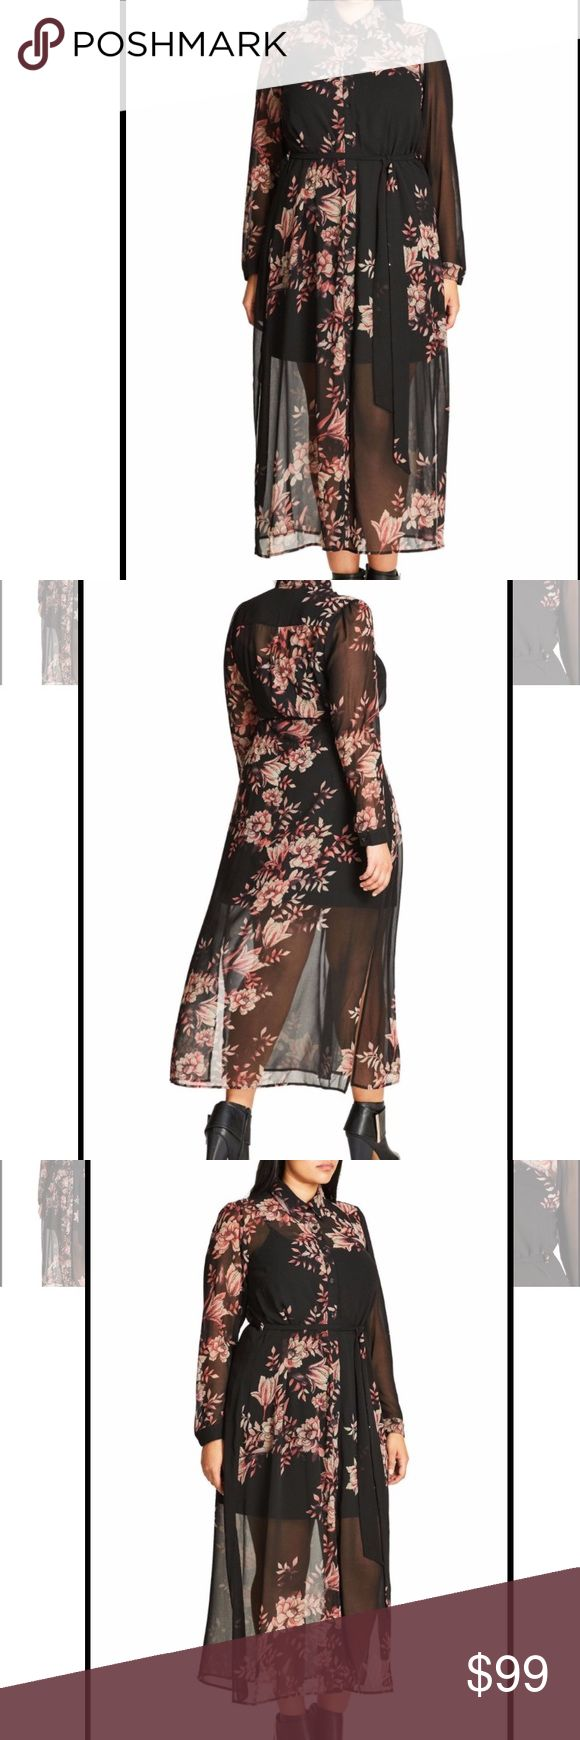 City Chic Longline Lady Maxi Dress Brand new Longline Lady Maxi Dress with black slip. Trendy, stylish, and chic. New with tags. City Chic Dresses Maxi